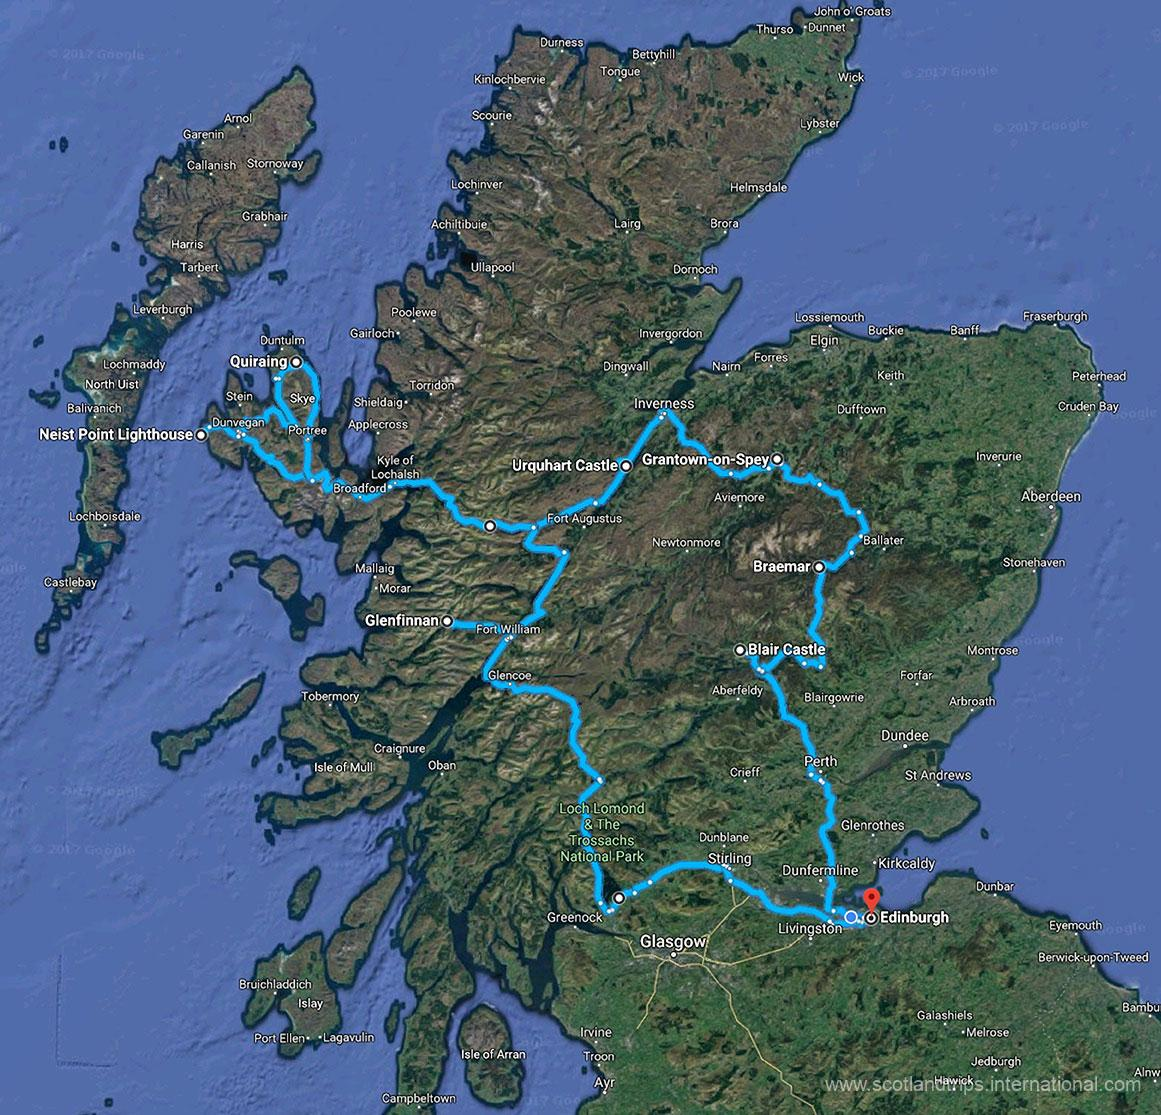 MAP-Tour-The-Highlands-Loch-Ness-Caledonian-Canal-Skye